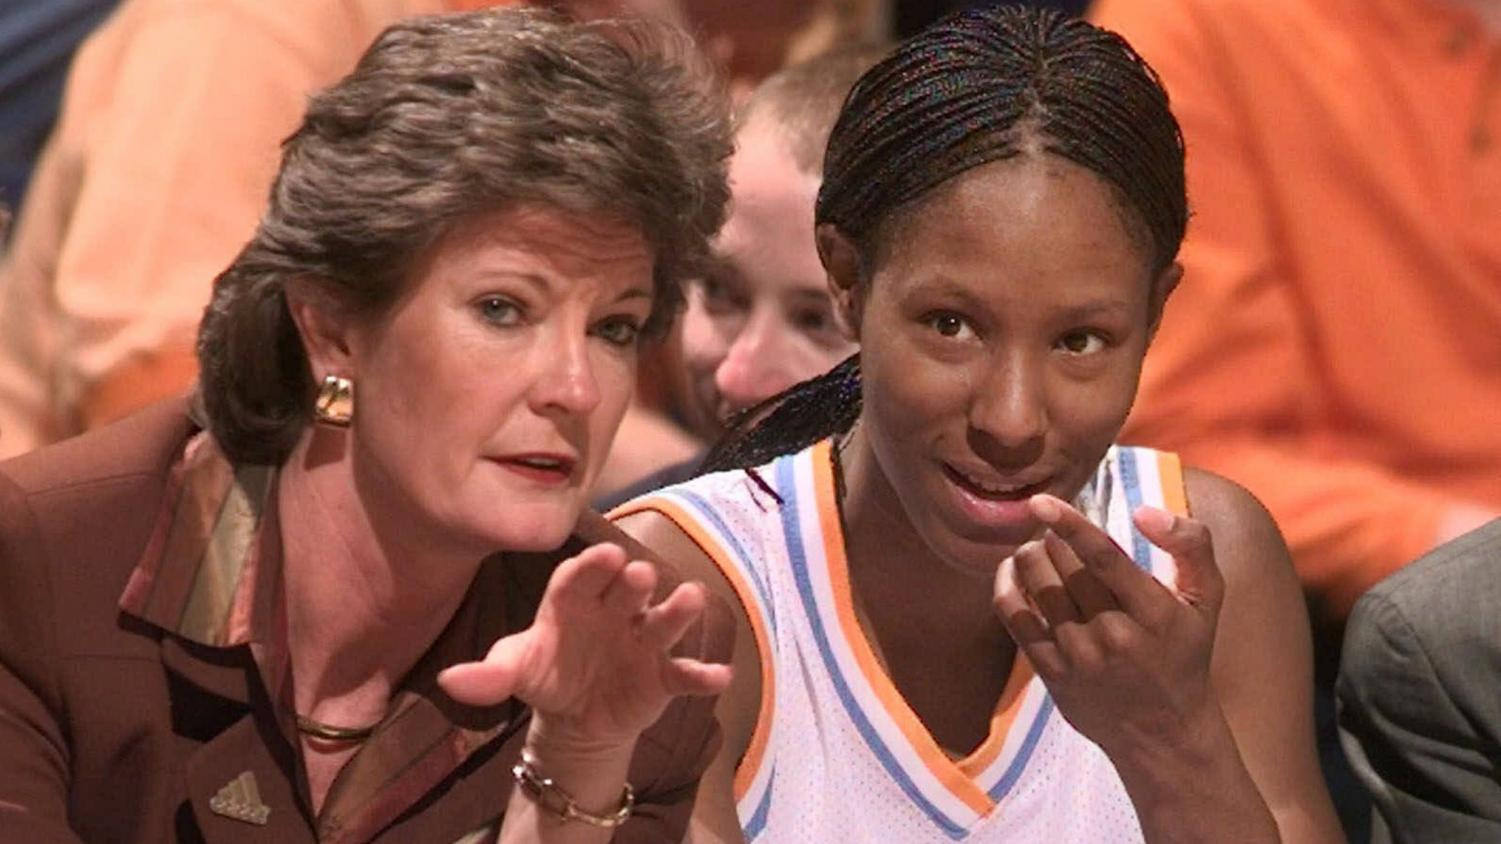 Tennessee head coach Pat Summitt talks with Chamique Holdsclaw on the bench as Holdsclaw ices her knees in the final minutes of their game against Florida at the SEC women's tournament in Chattanooga, Tenn. on Friday, Feb. 26, 1999. Tennessee defeated Florida, 92-80, to advance to the semifinal round of the tournament. (AP Photo/Mark Humphrey)